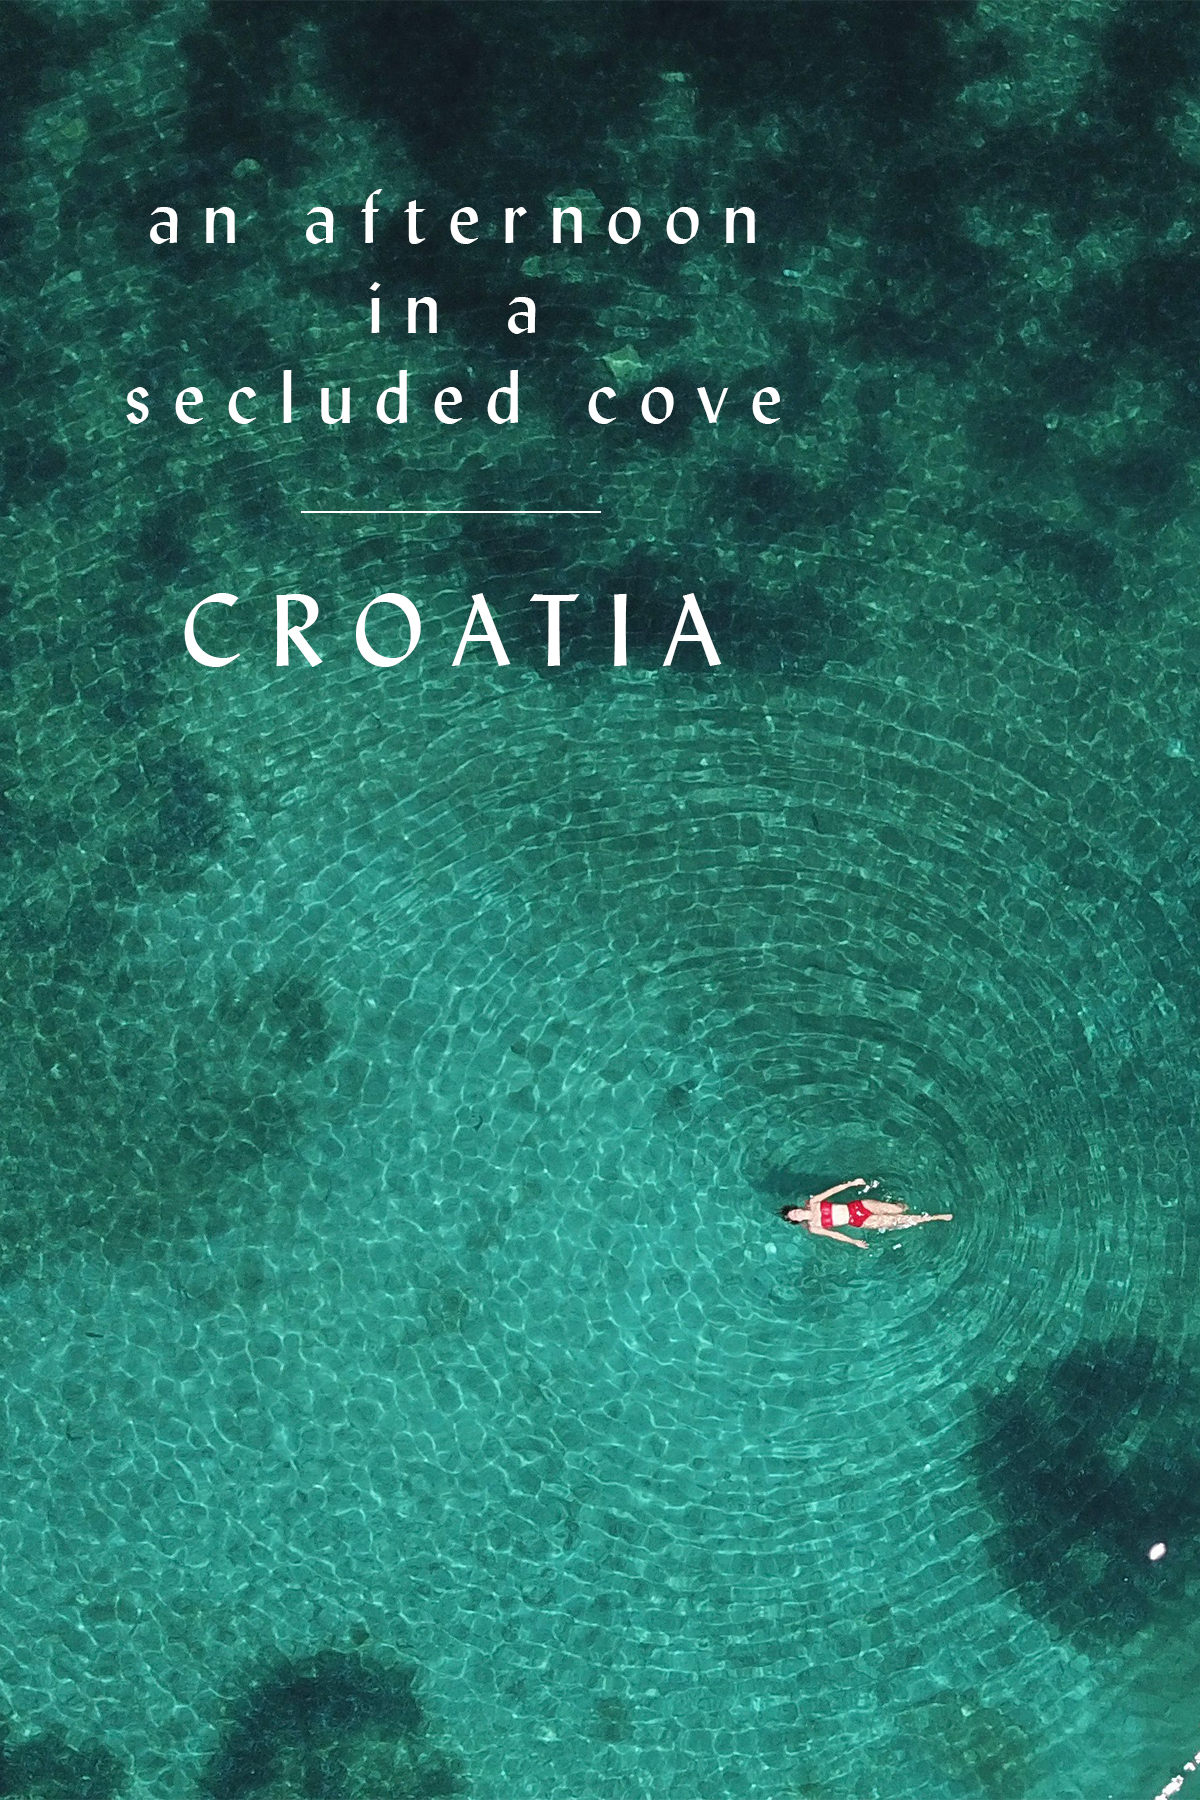 an afternoon in a secluded cove in Croatia.jpg